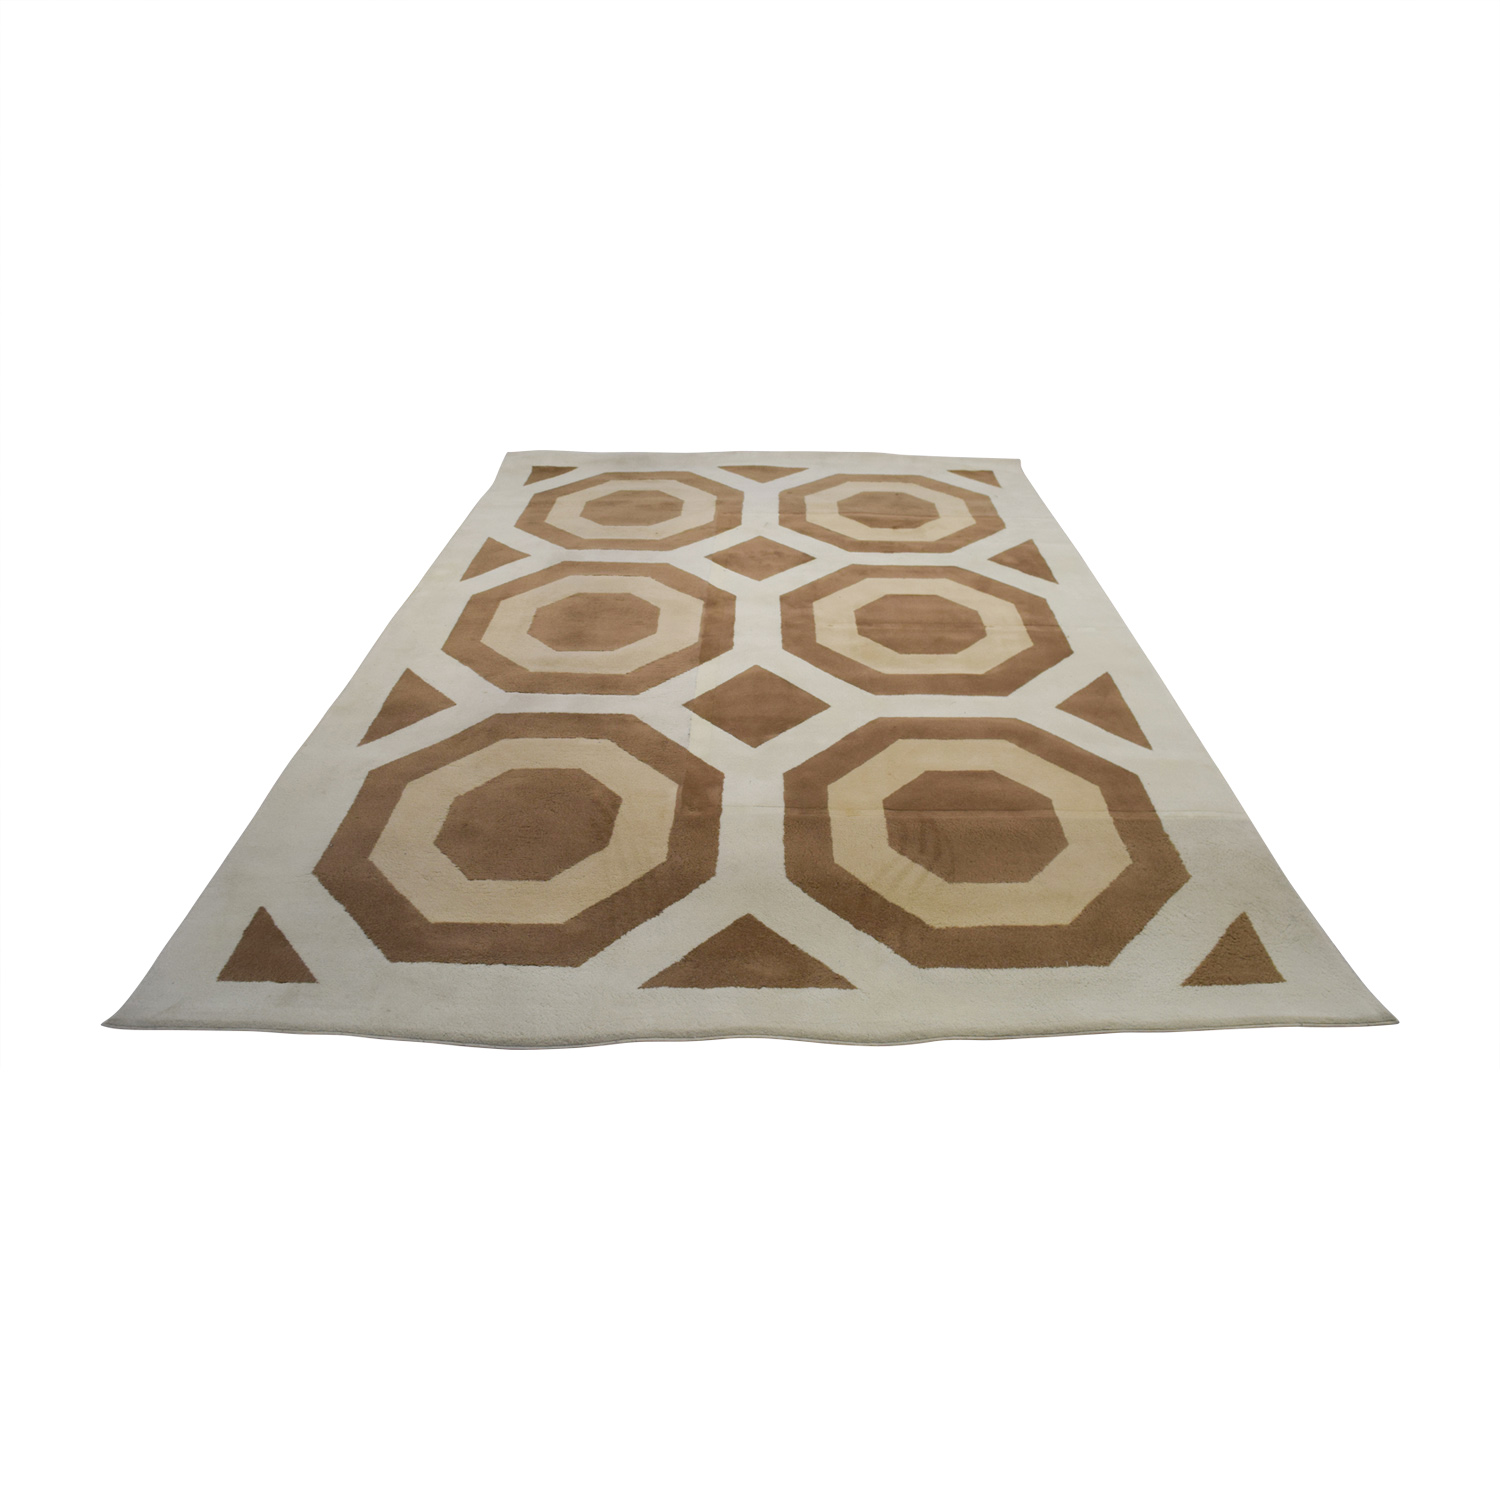 Ethan Allen Brown Beige and White Rug / Rugs